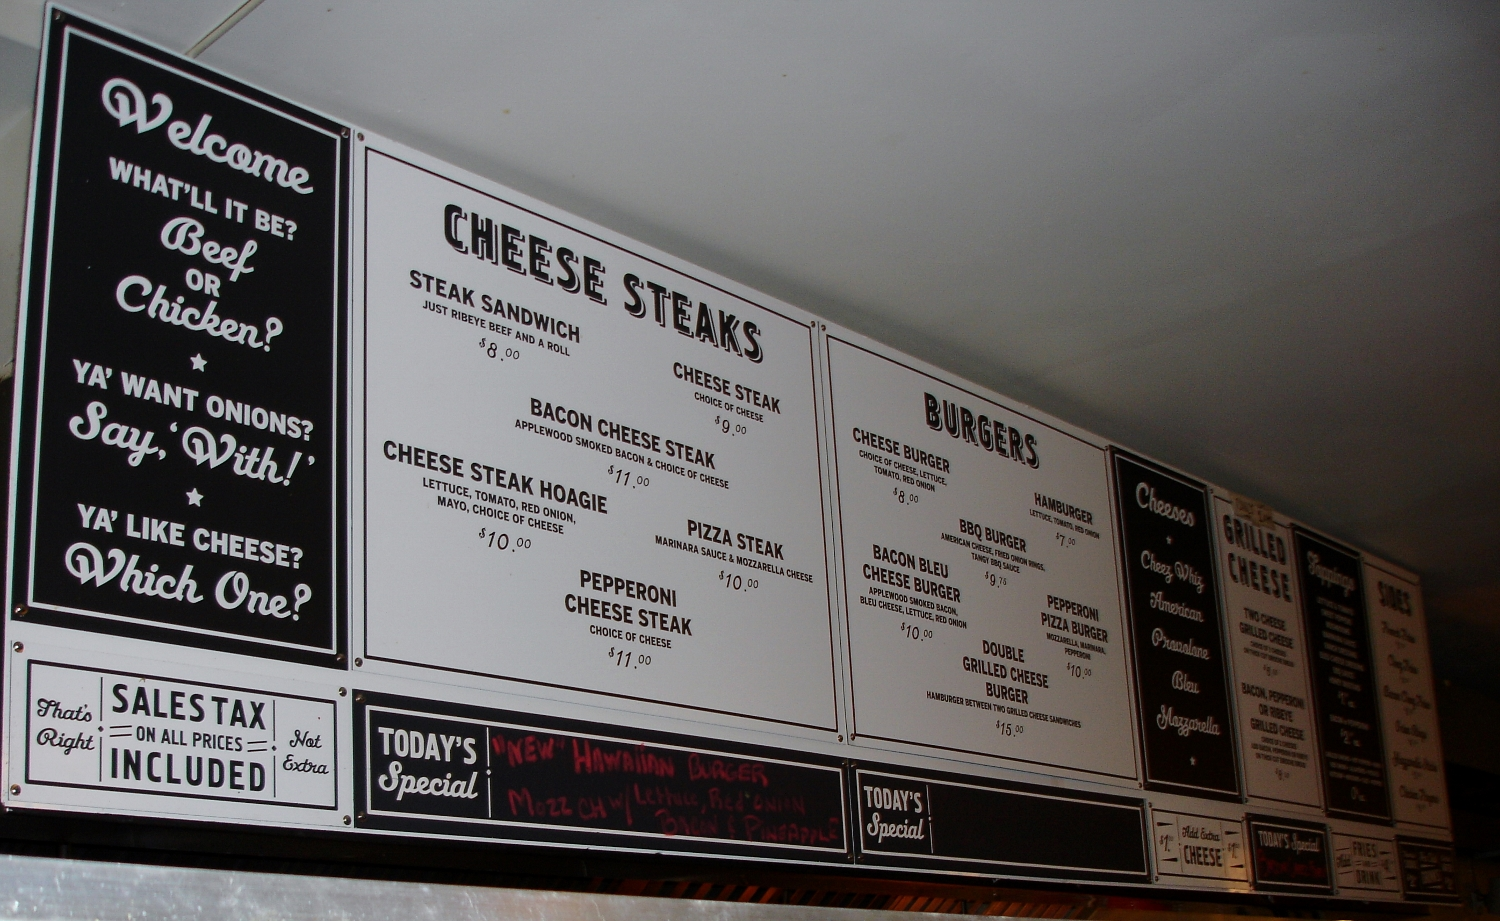 Cheesesteaks, burgers, and grilled cheese sandwiches are all the offer, other than sides and drinks. There is bleu cheese for your cheesesteak, if that's what you really want.